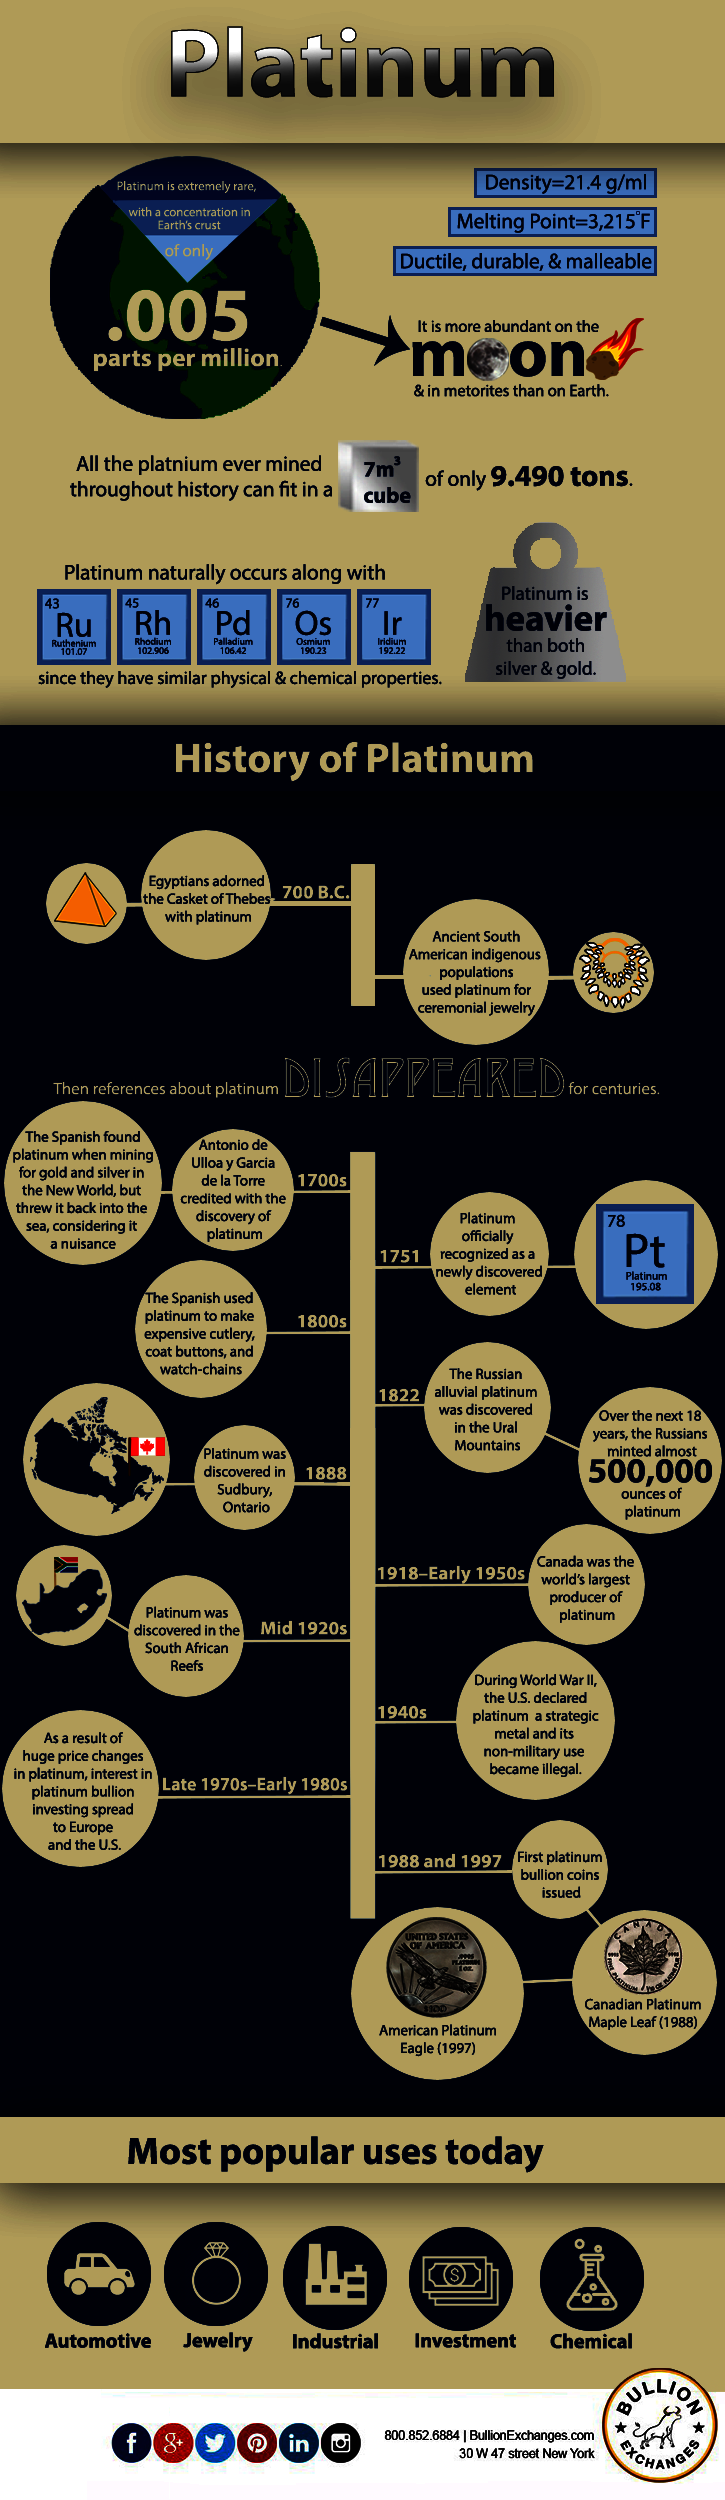 History of Platinum Infographic